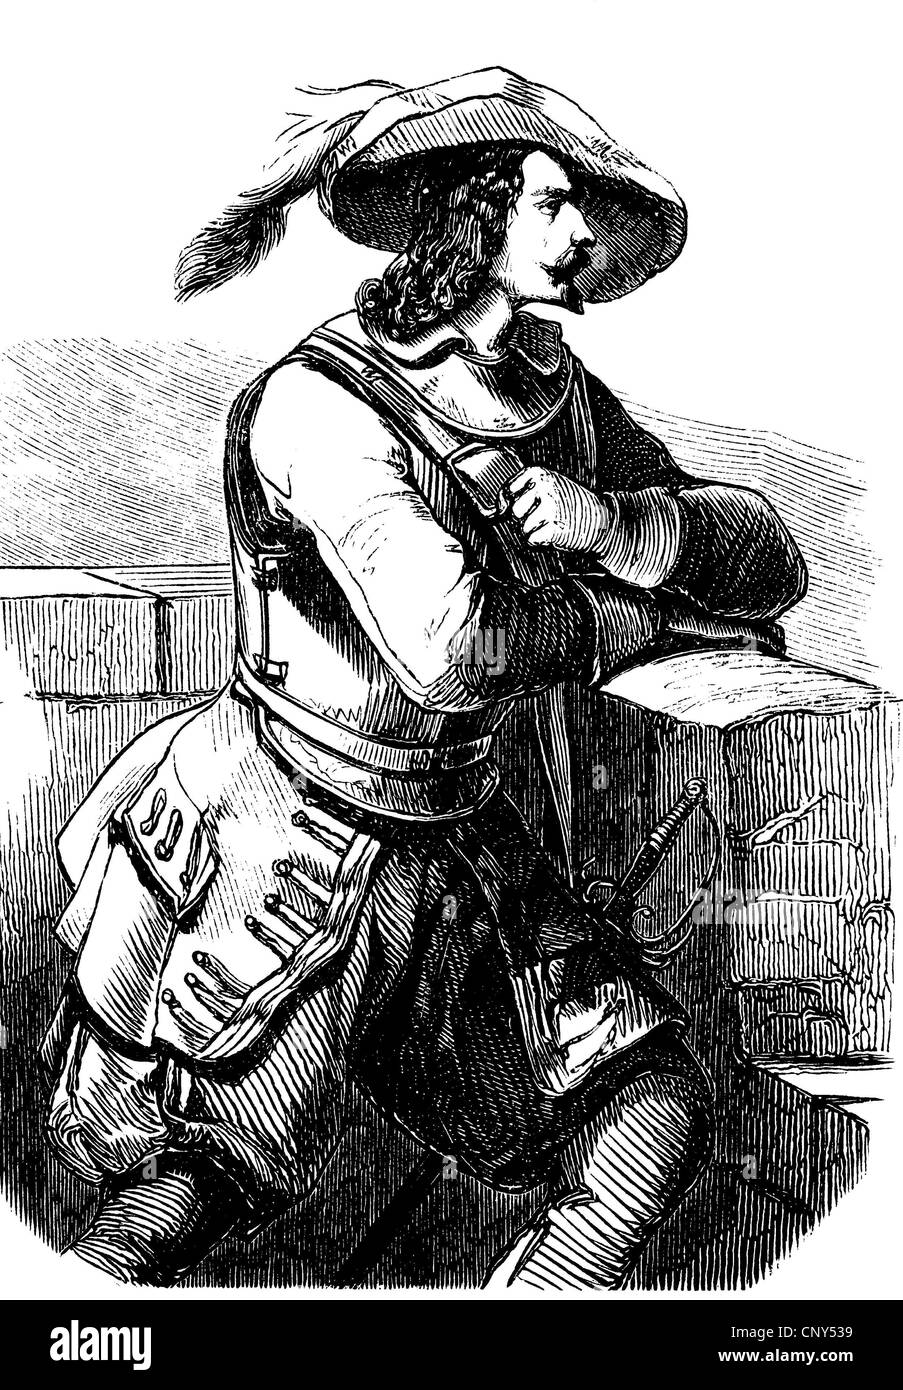 A Spanish nobleman in the Middle Ages, historical wood engraving, about 1888 - Stock Image